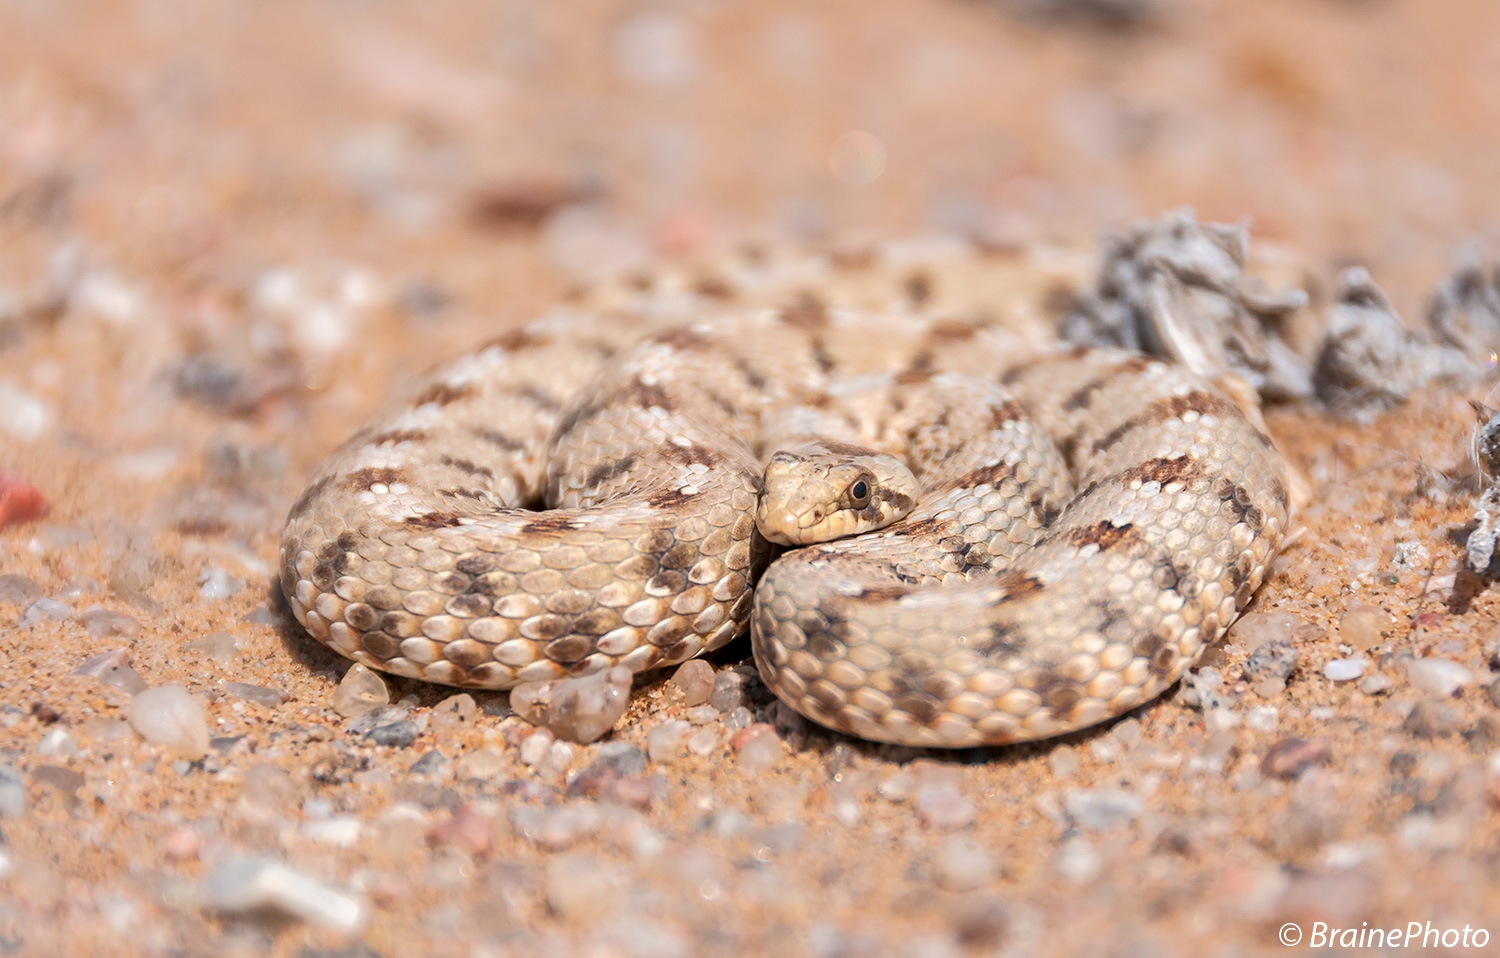 Our Eco Dune Tour (also known as the Living Desert Tour) focuses on the ecology of the dunes. This Dwarf Beaked snake is one of several snake species that can be seen on this desert day tour.